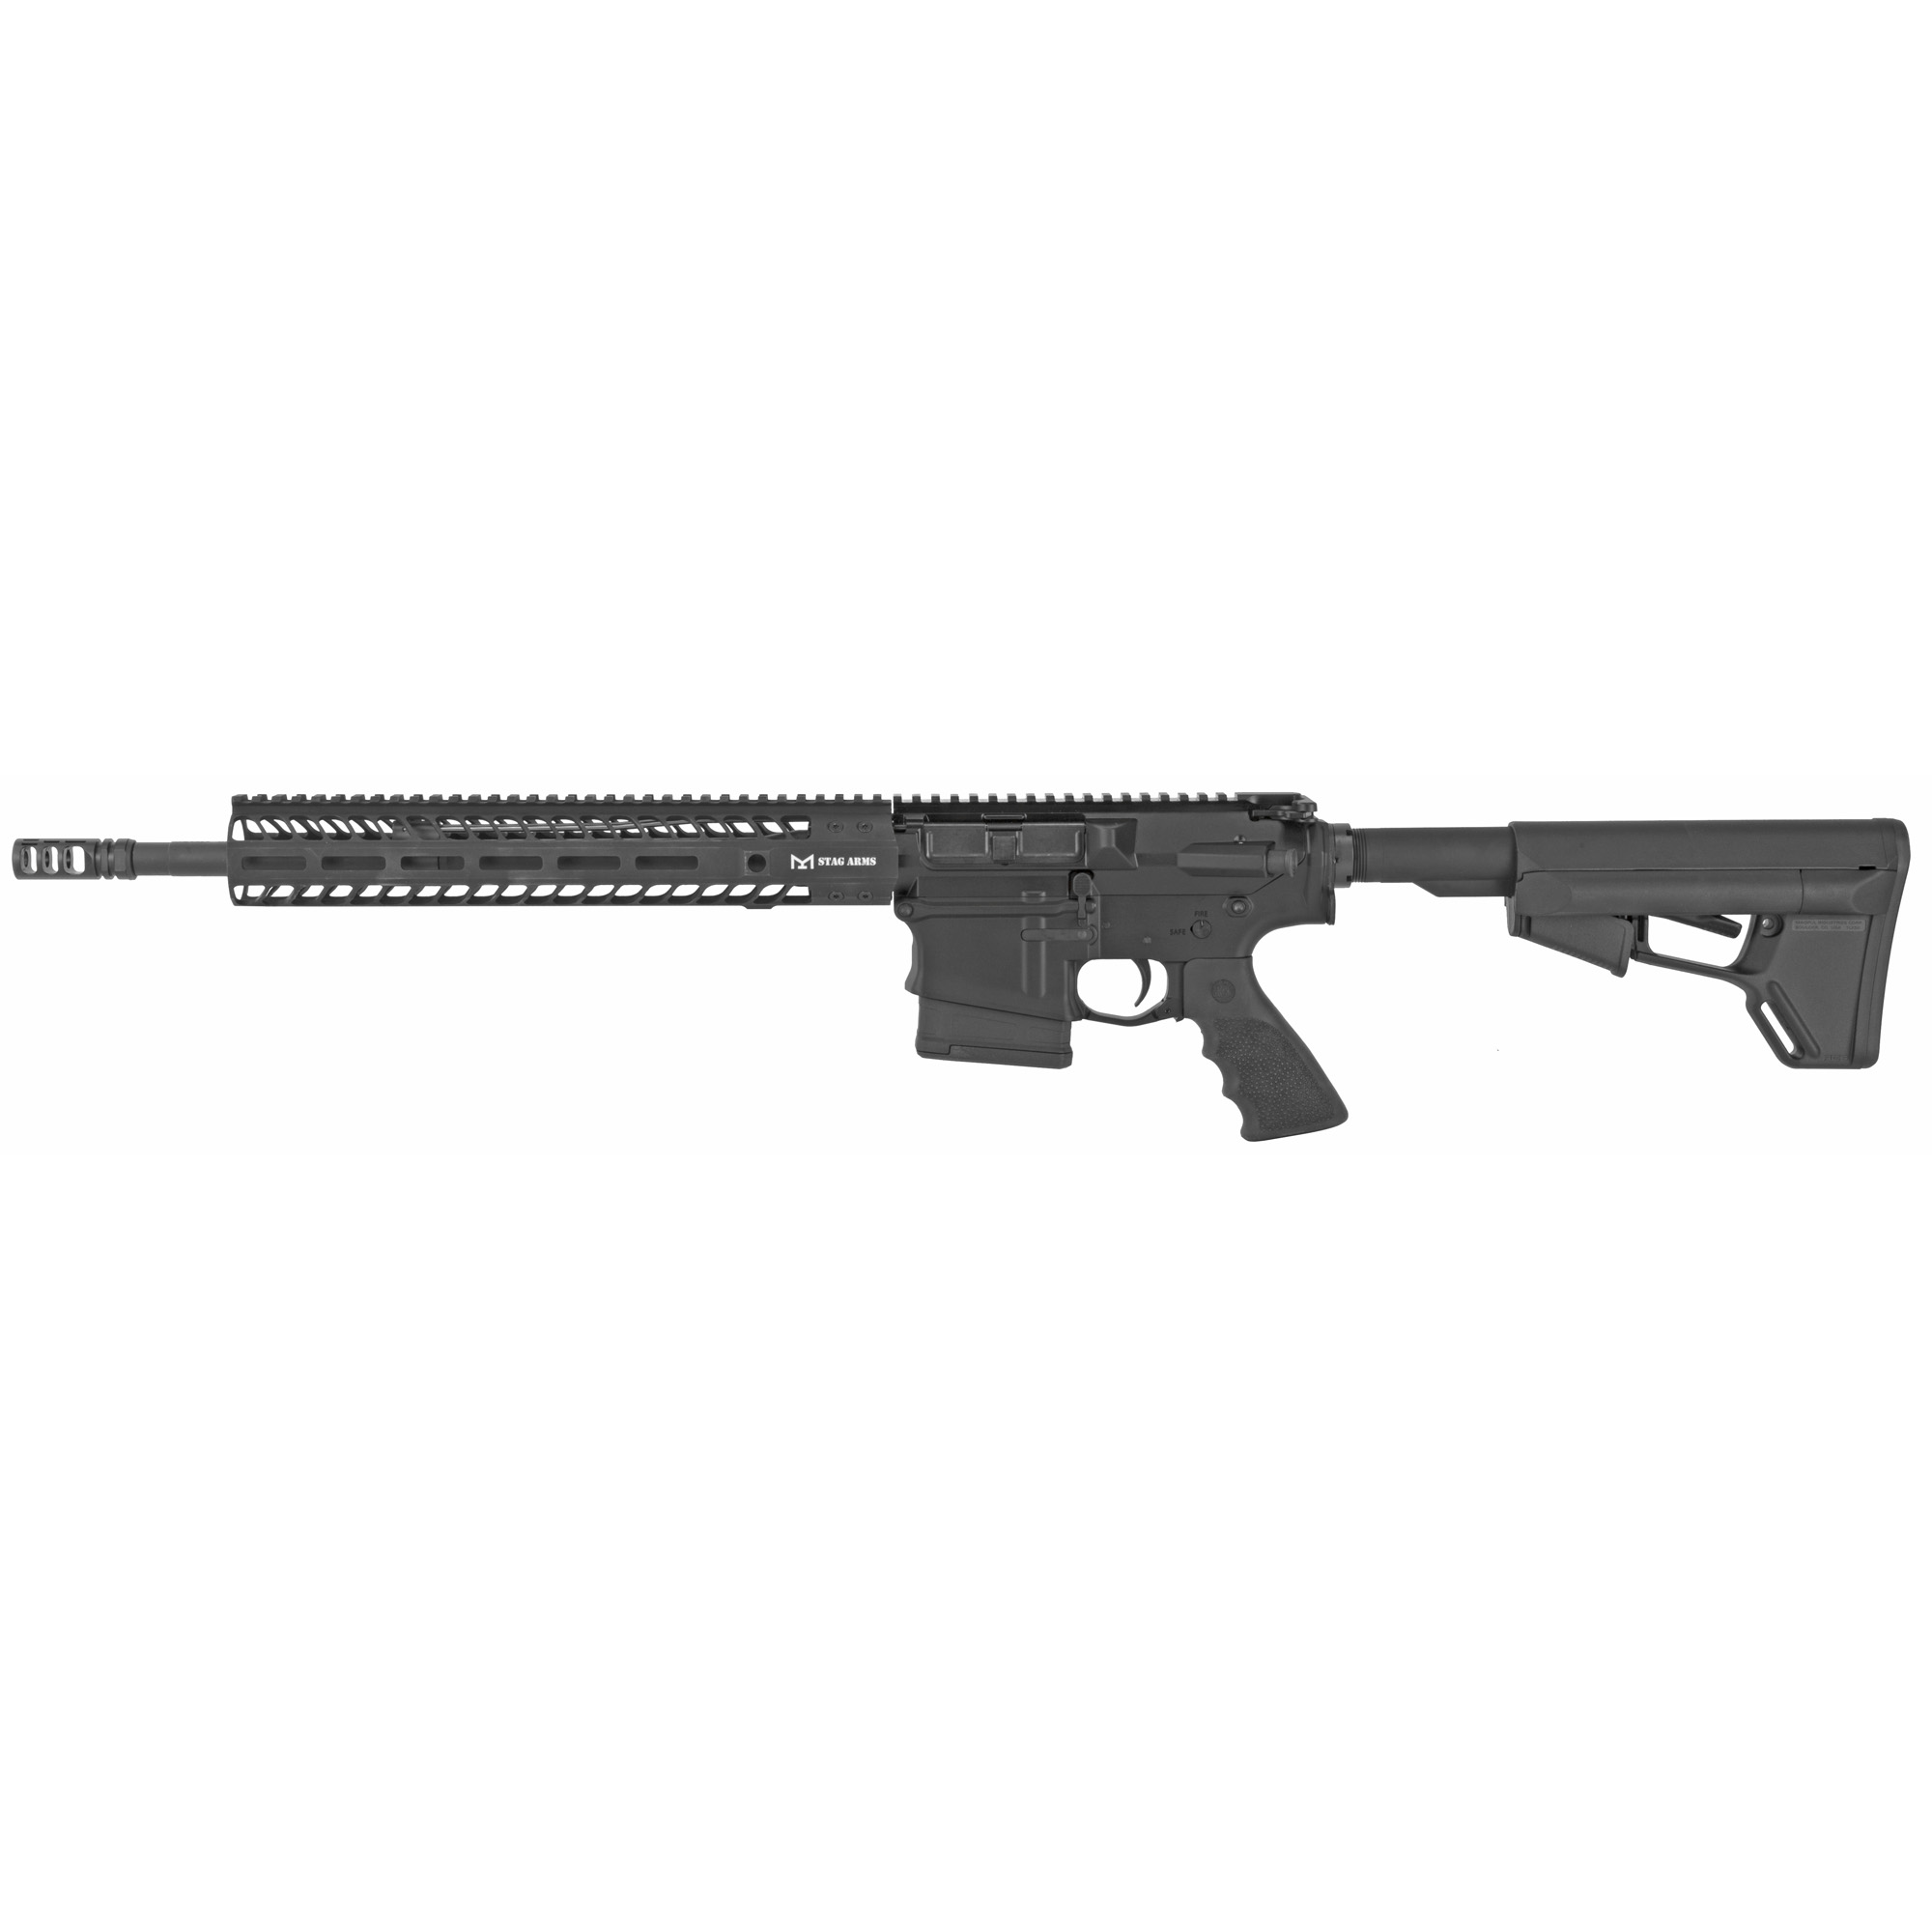 "The Stag 10SL .308 M-LOK Left-Handed Rifle was specifically designed for those moments where you need that extra power in close quarters"" now with a light-weight ergonomic 13.5"" Stag Handguard. The Stag .308 line features a Stag slant cut design and includes uniquely designed parts for the lower to guarantee the best fit between the upper and lower. The remainder of the rifle utilizes the DPMS .308 platform for parts compatibility. The Stag 10SL features a .308 chamber 16"" 1/10 barrel"" VG6 Gamma Compensator"" 13.5"" Stag M-LOK Handguard and a Left Handed QPQ Nitride BCG. Every complete rifle from Stag Arms comes with a Transferable Lifetime Warranty"" an Infinite Shot Barrel Guarantee"" a magazine and a rifle case."